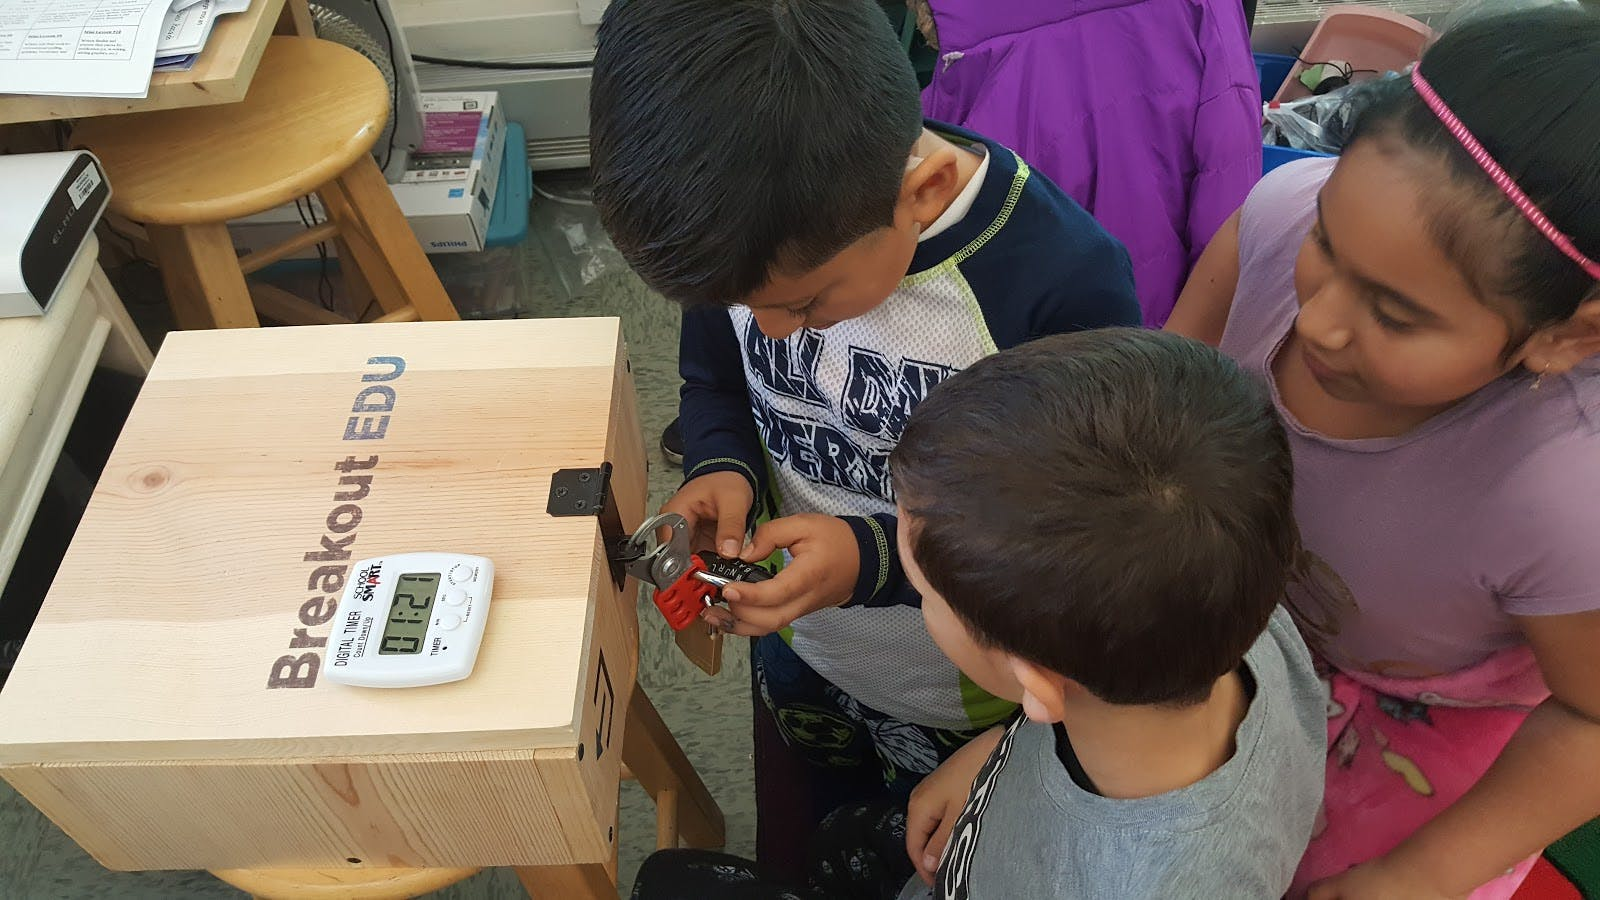 To Build Teamwork, Breakout EDU Challenges Students to Think Out of the Box